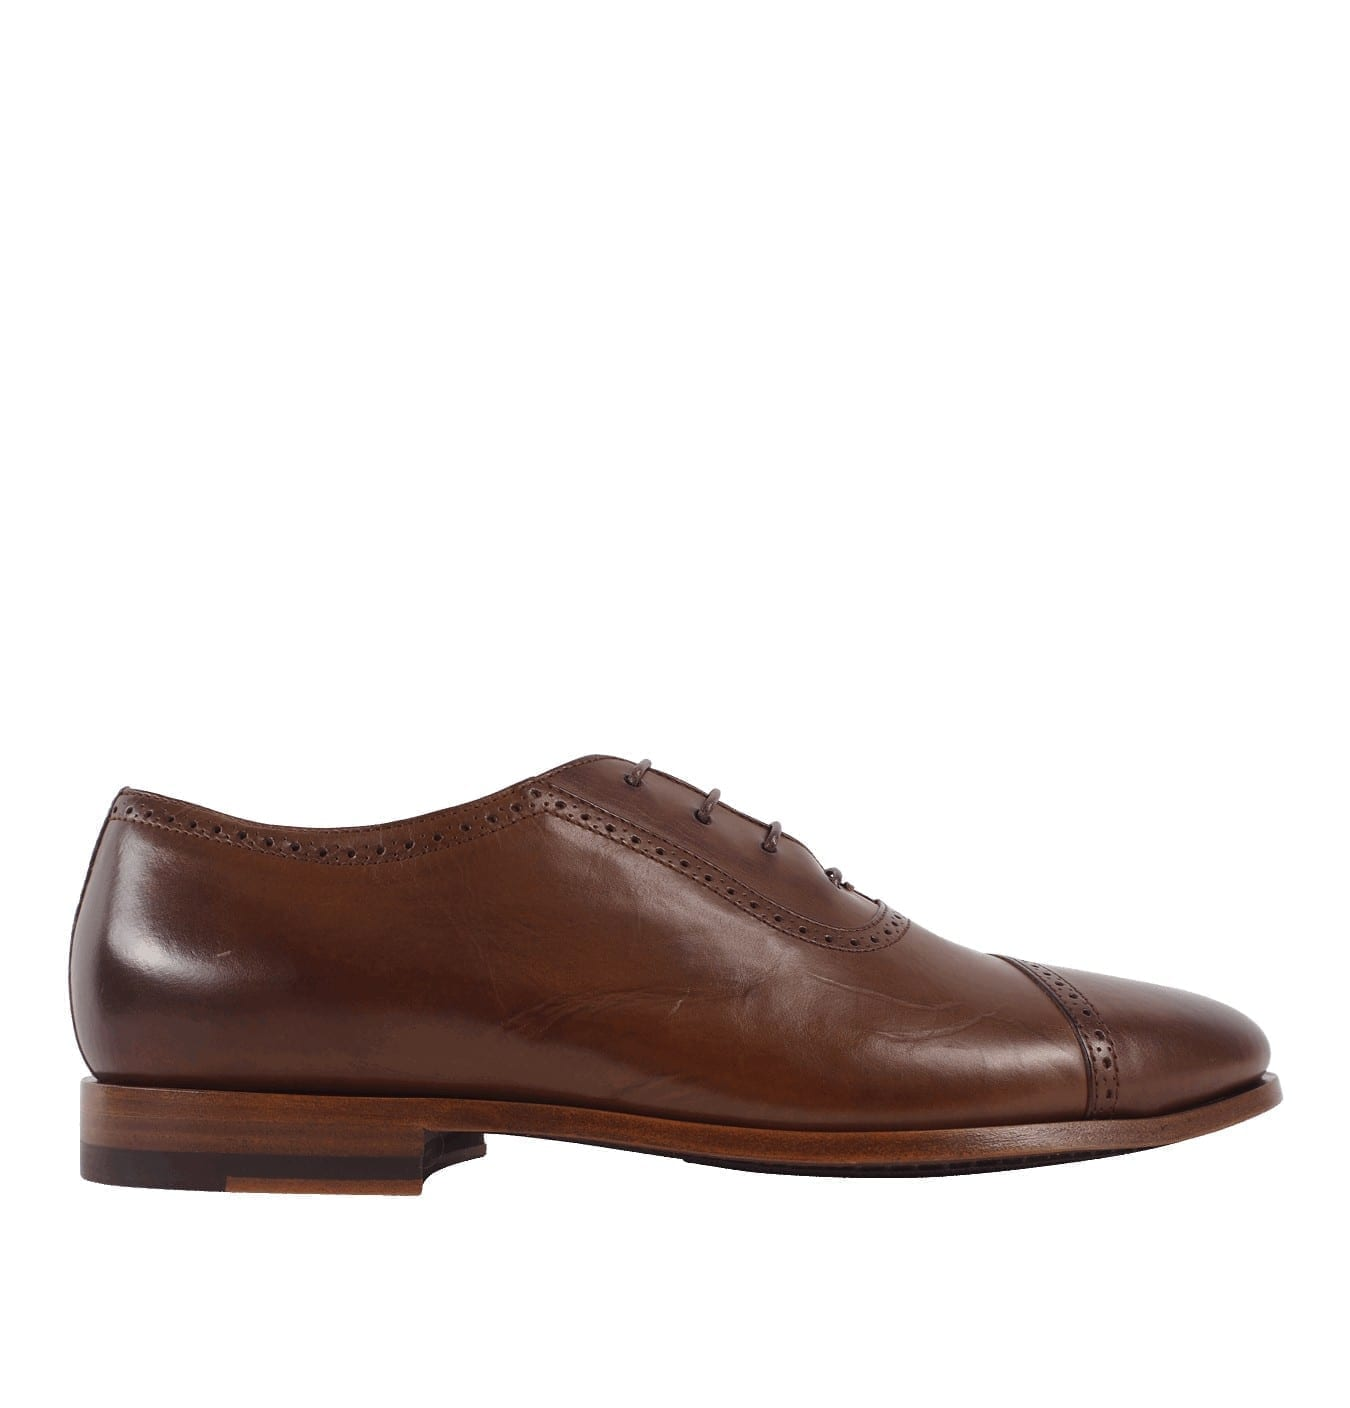 Image of   Men's Dark Tan Parma Calf Leather 'Amber' Oxford Shoes